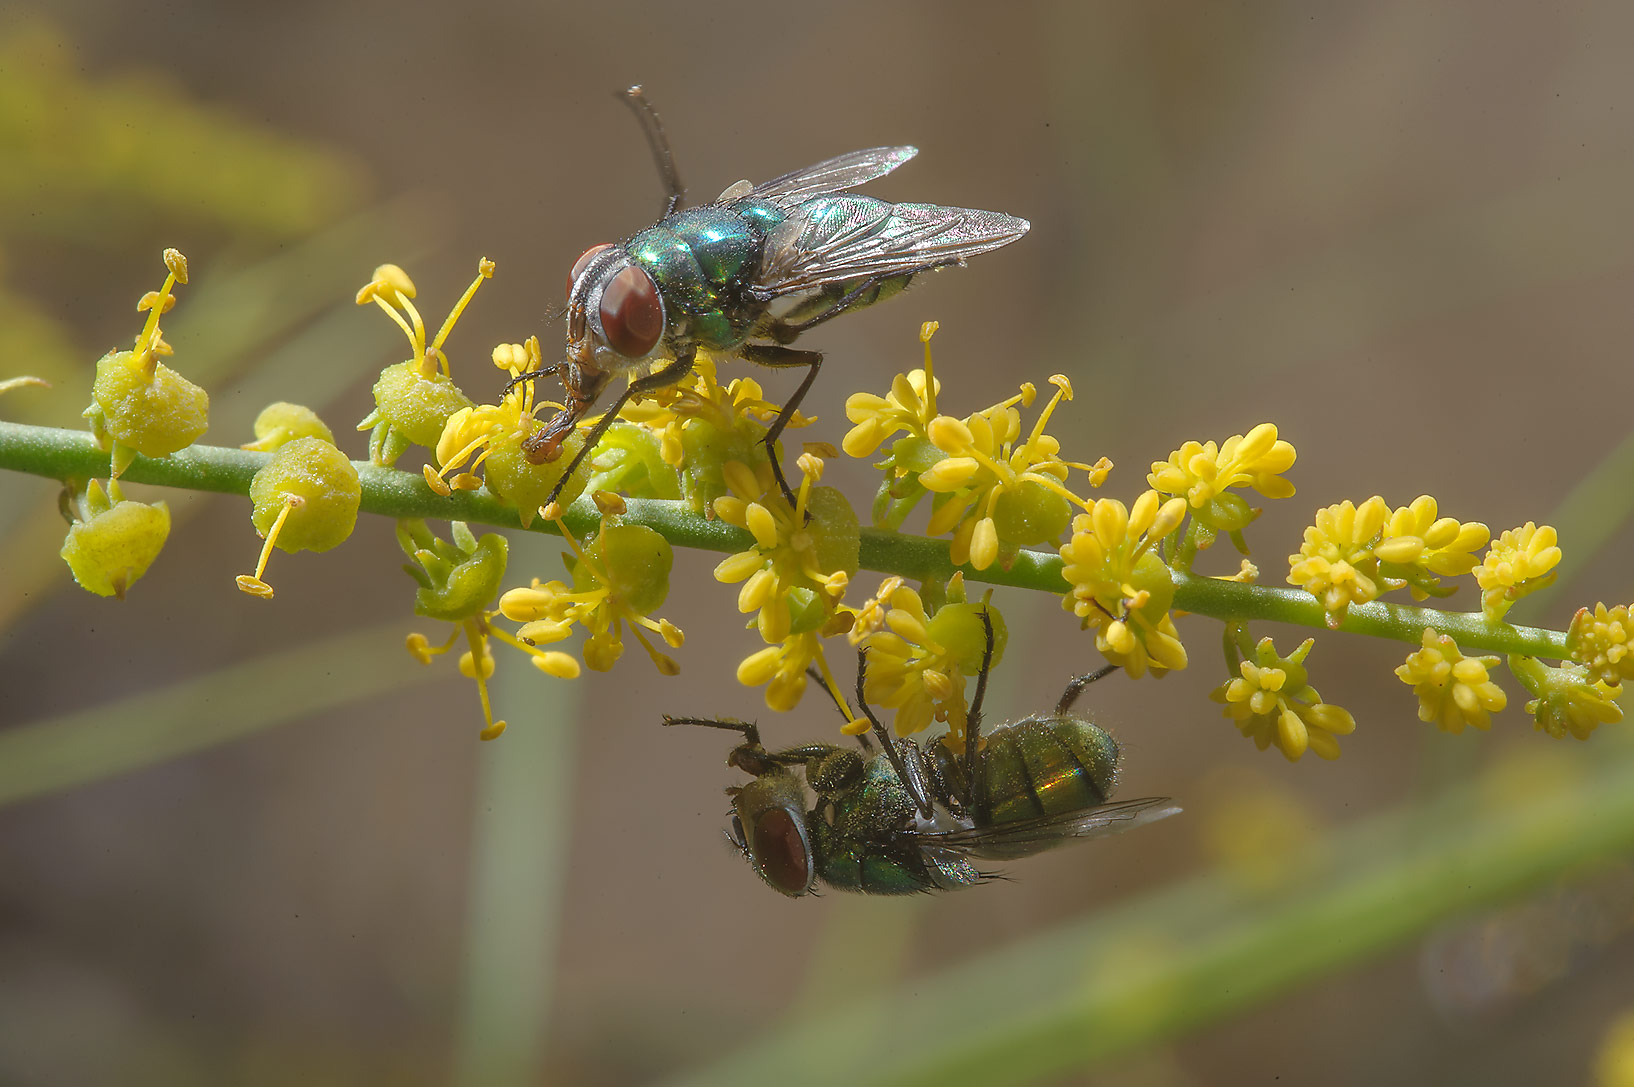 Flies sitting on yellow flowers of Ochradenus...north from Dukhan in western Qatar